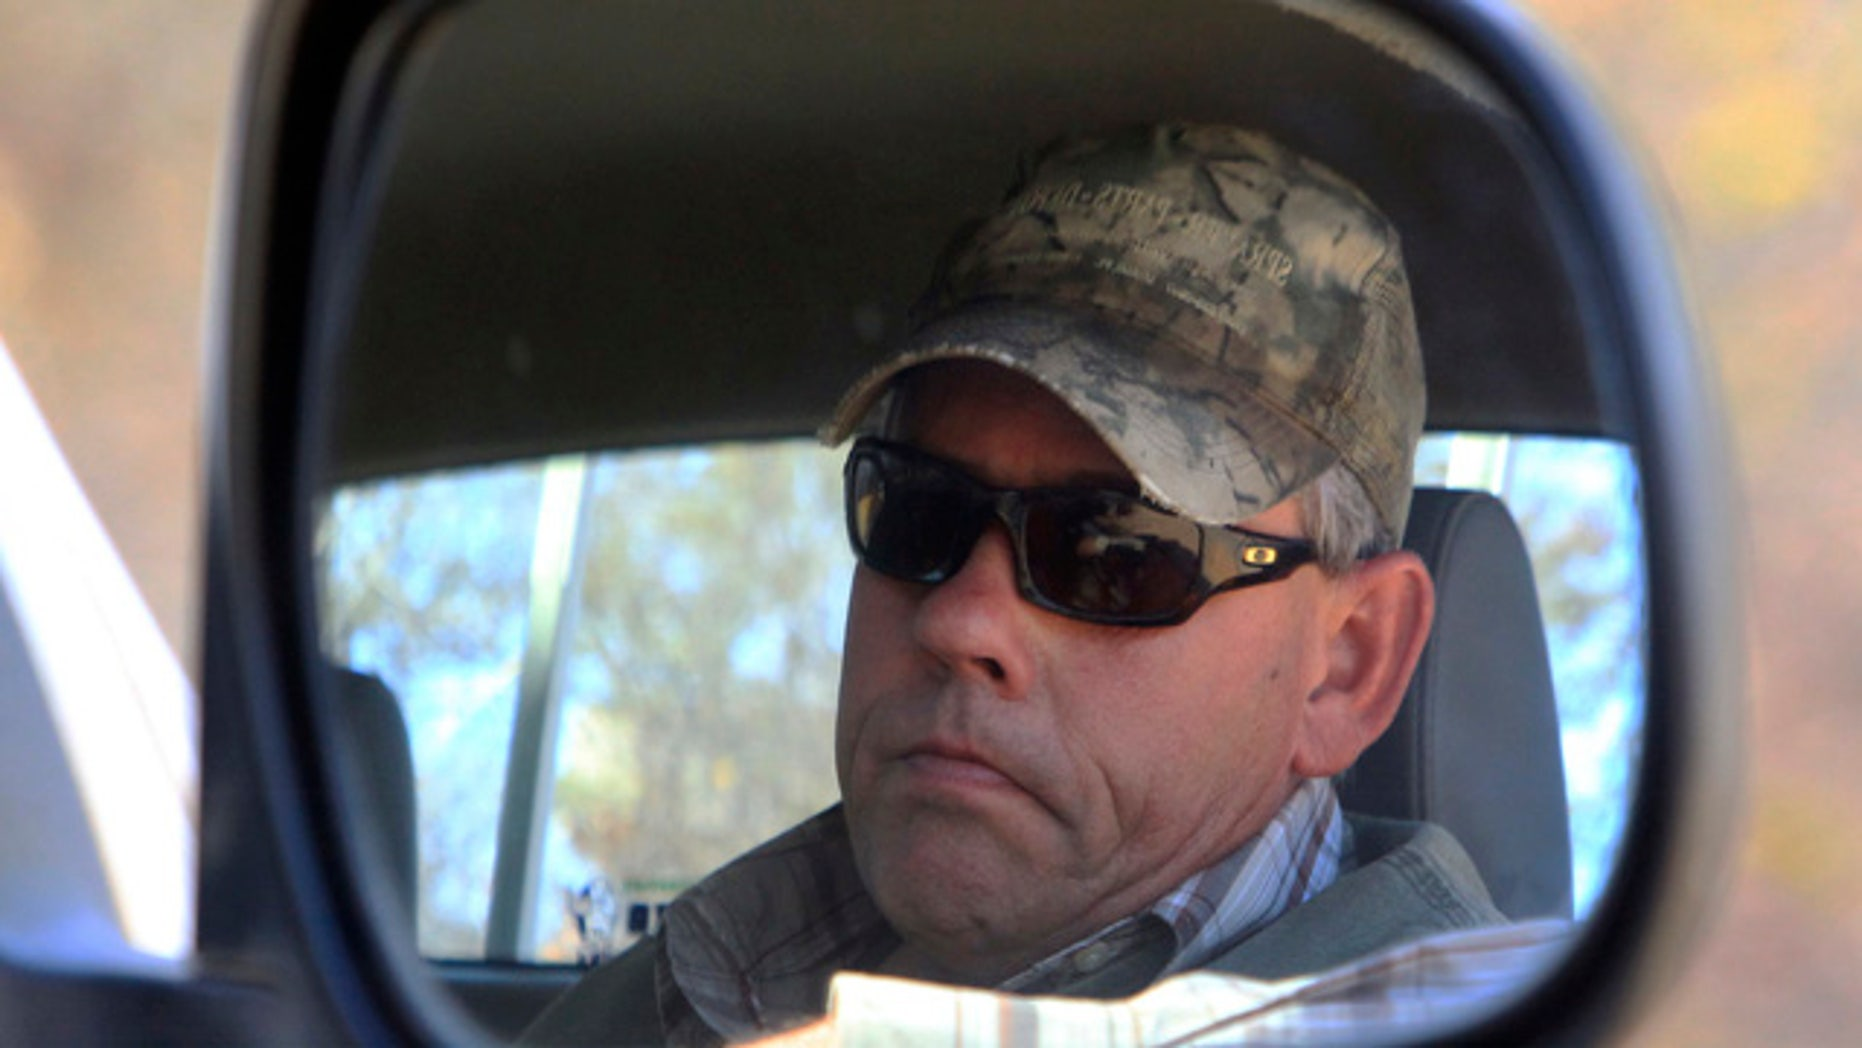 Aug. 5, 2015: Professional hunter Theodore Bronkhorst sits in his car upon his arrival at the magistrates courts to face trial in Hwange about 435 miles south west of Harare, Zimbabwe. (AP Photo/Tsvangirayi Mukwazhi)